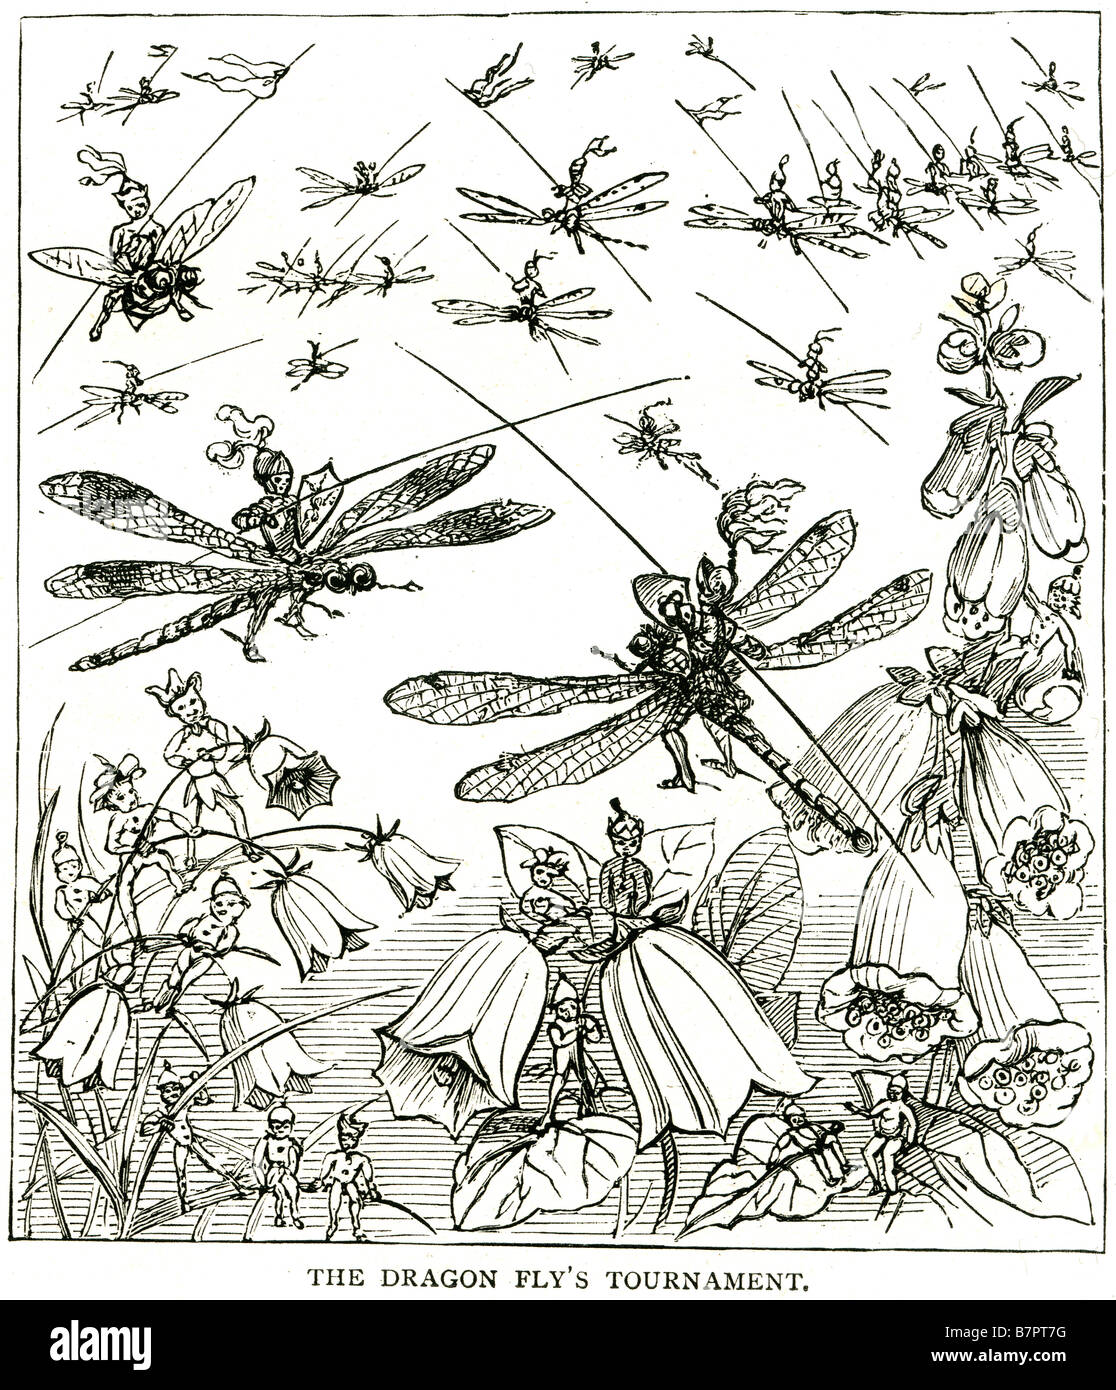 dragon fly tournament joust fairies insects fantasy cartoon jousting blue bells flower summer outside garden park - Stock Image